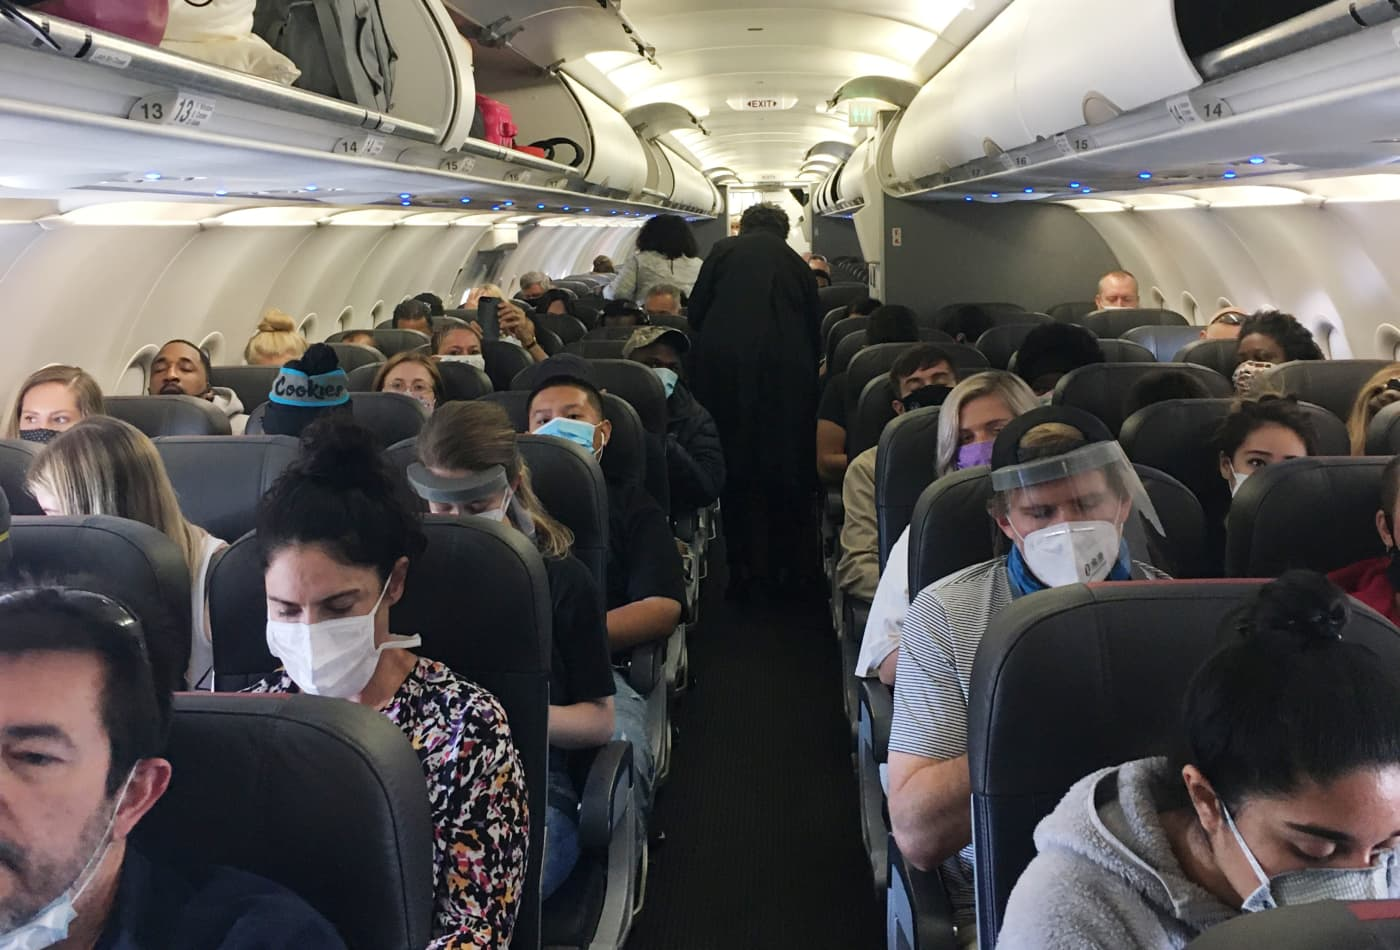 I flew cross-country during the pandemic—here's how I would prepare differently if I had to do it again